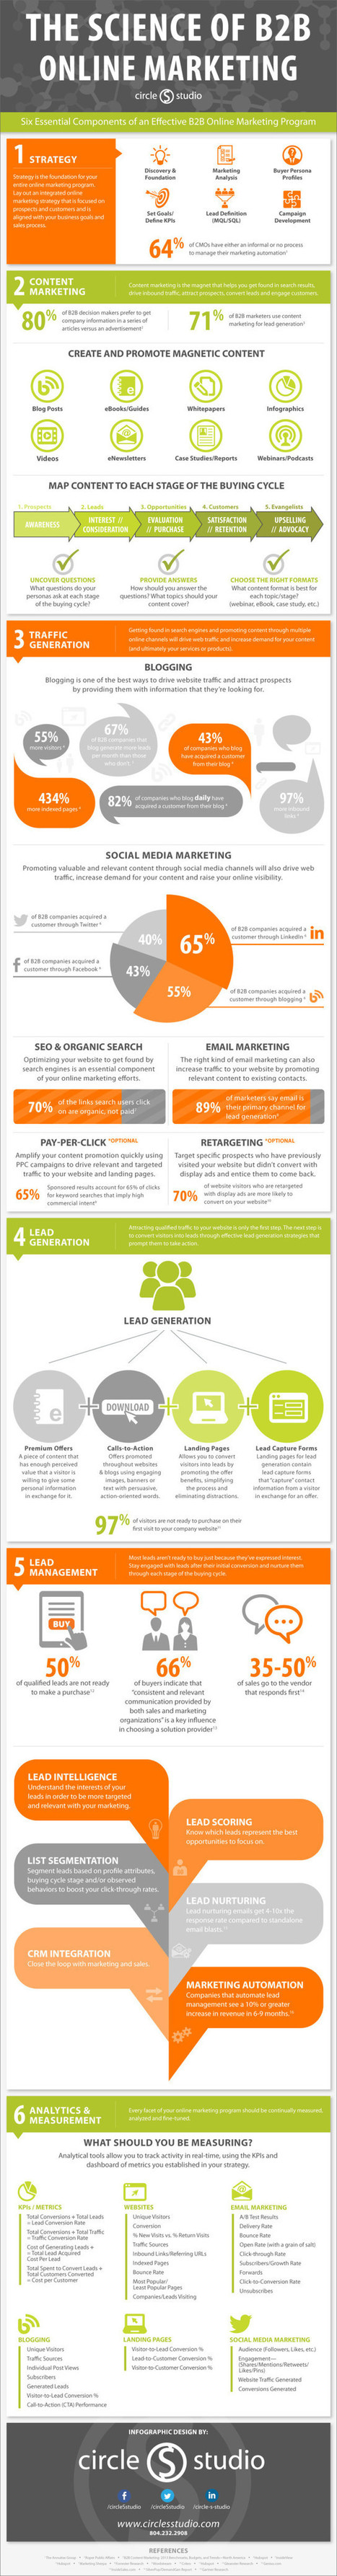 The Playbook for B2B Online Marketing #infographic   Surviving Social Chaos   Scoop.it